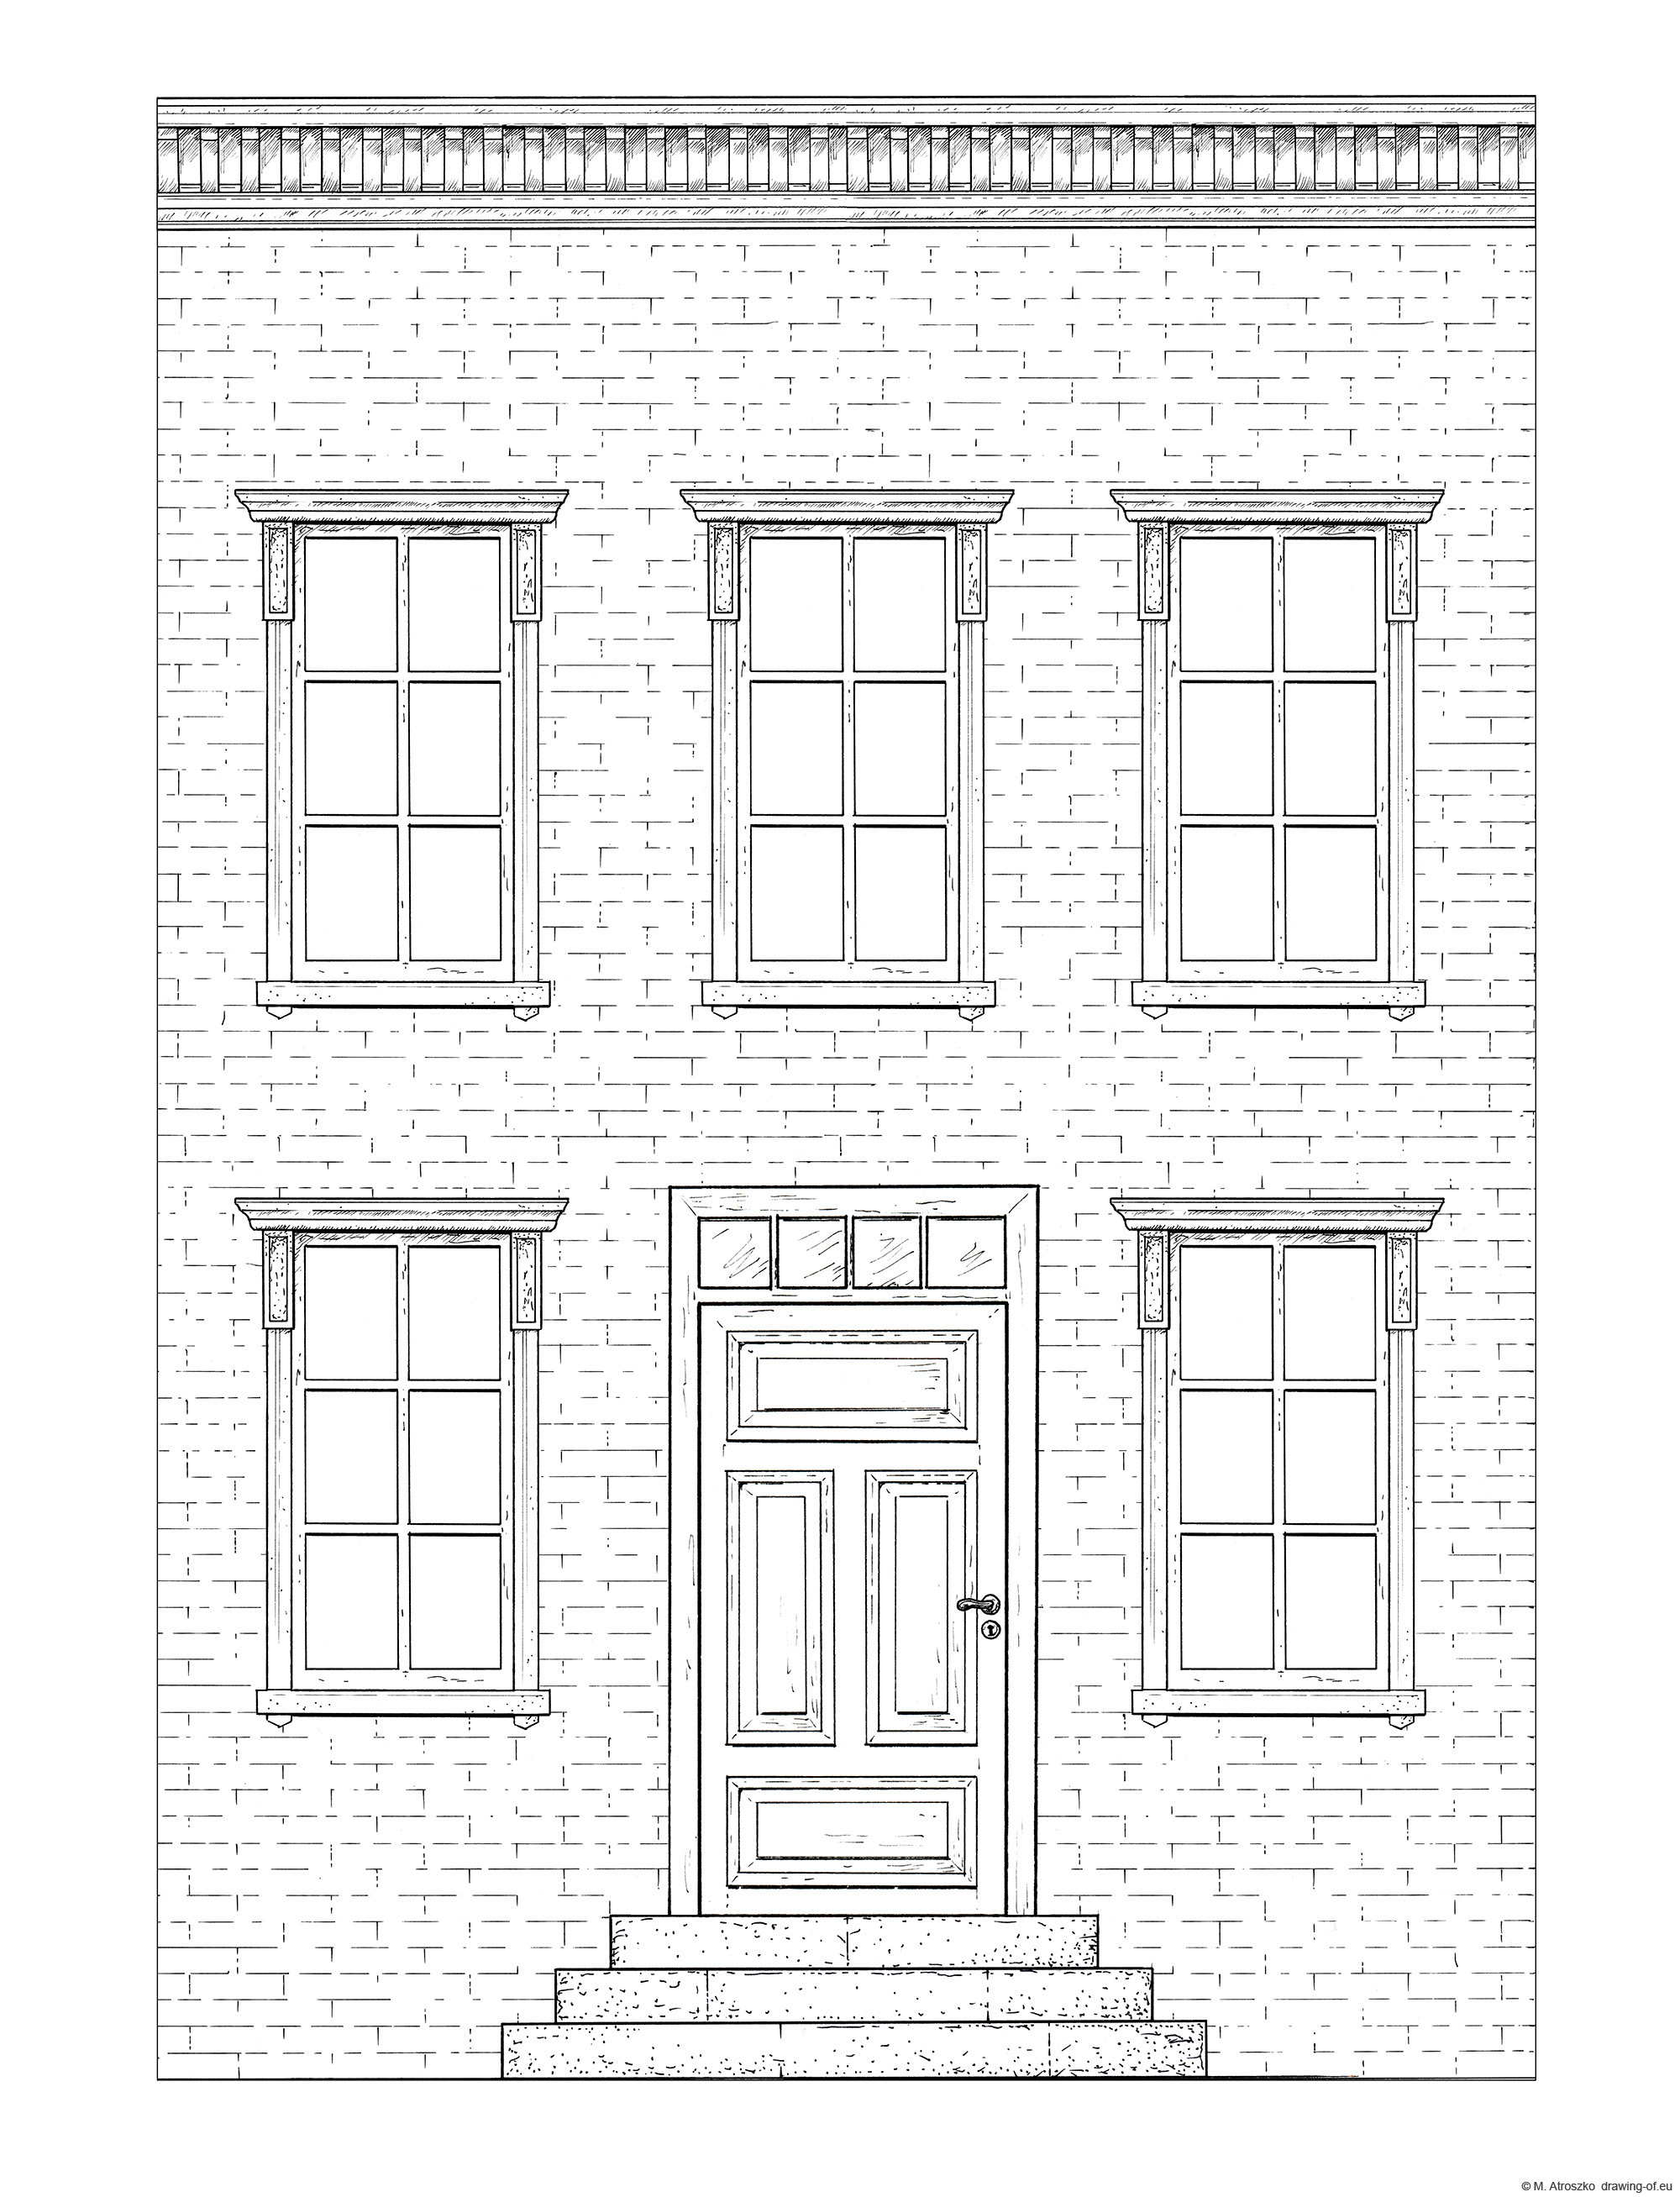 Drawing of building - town house